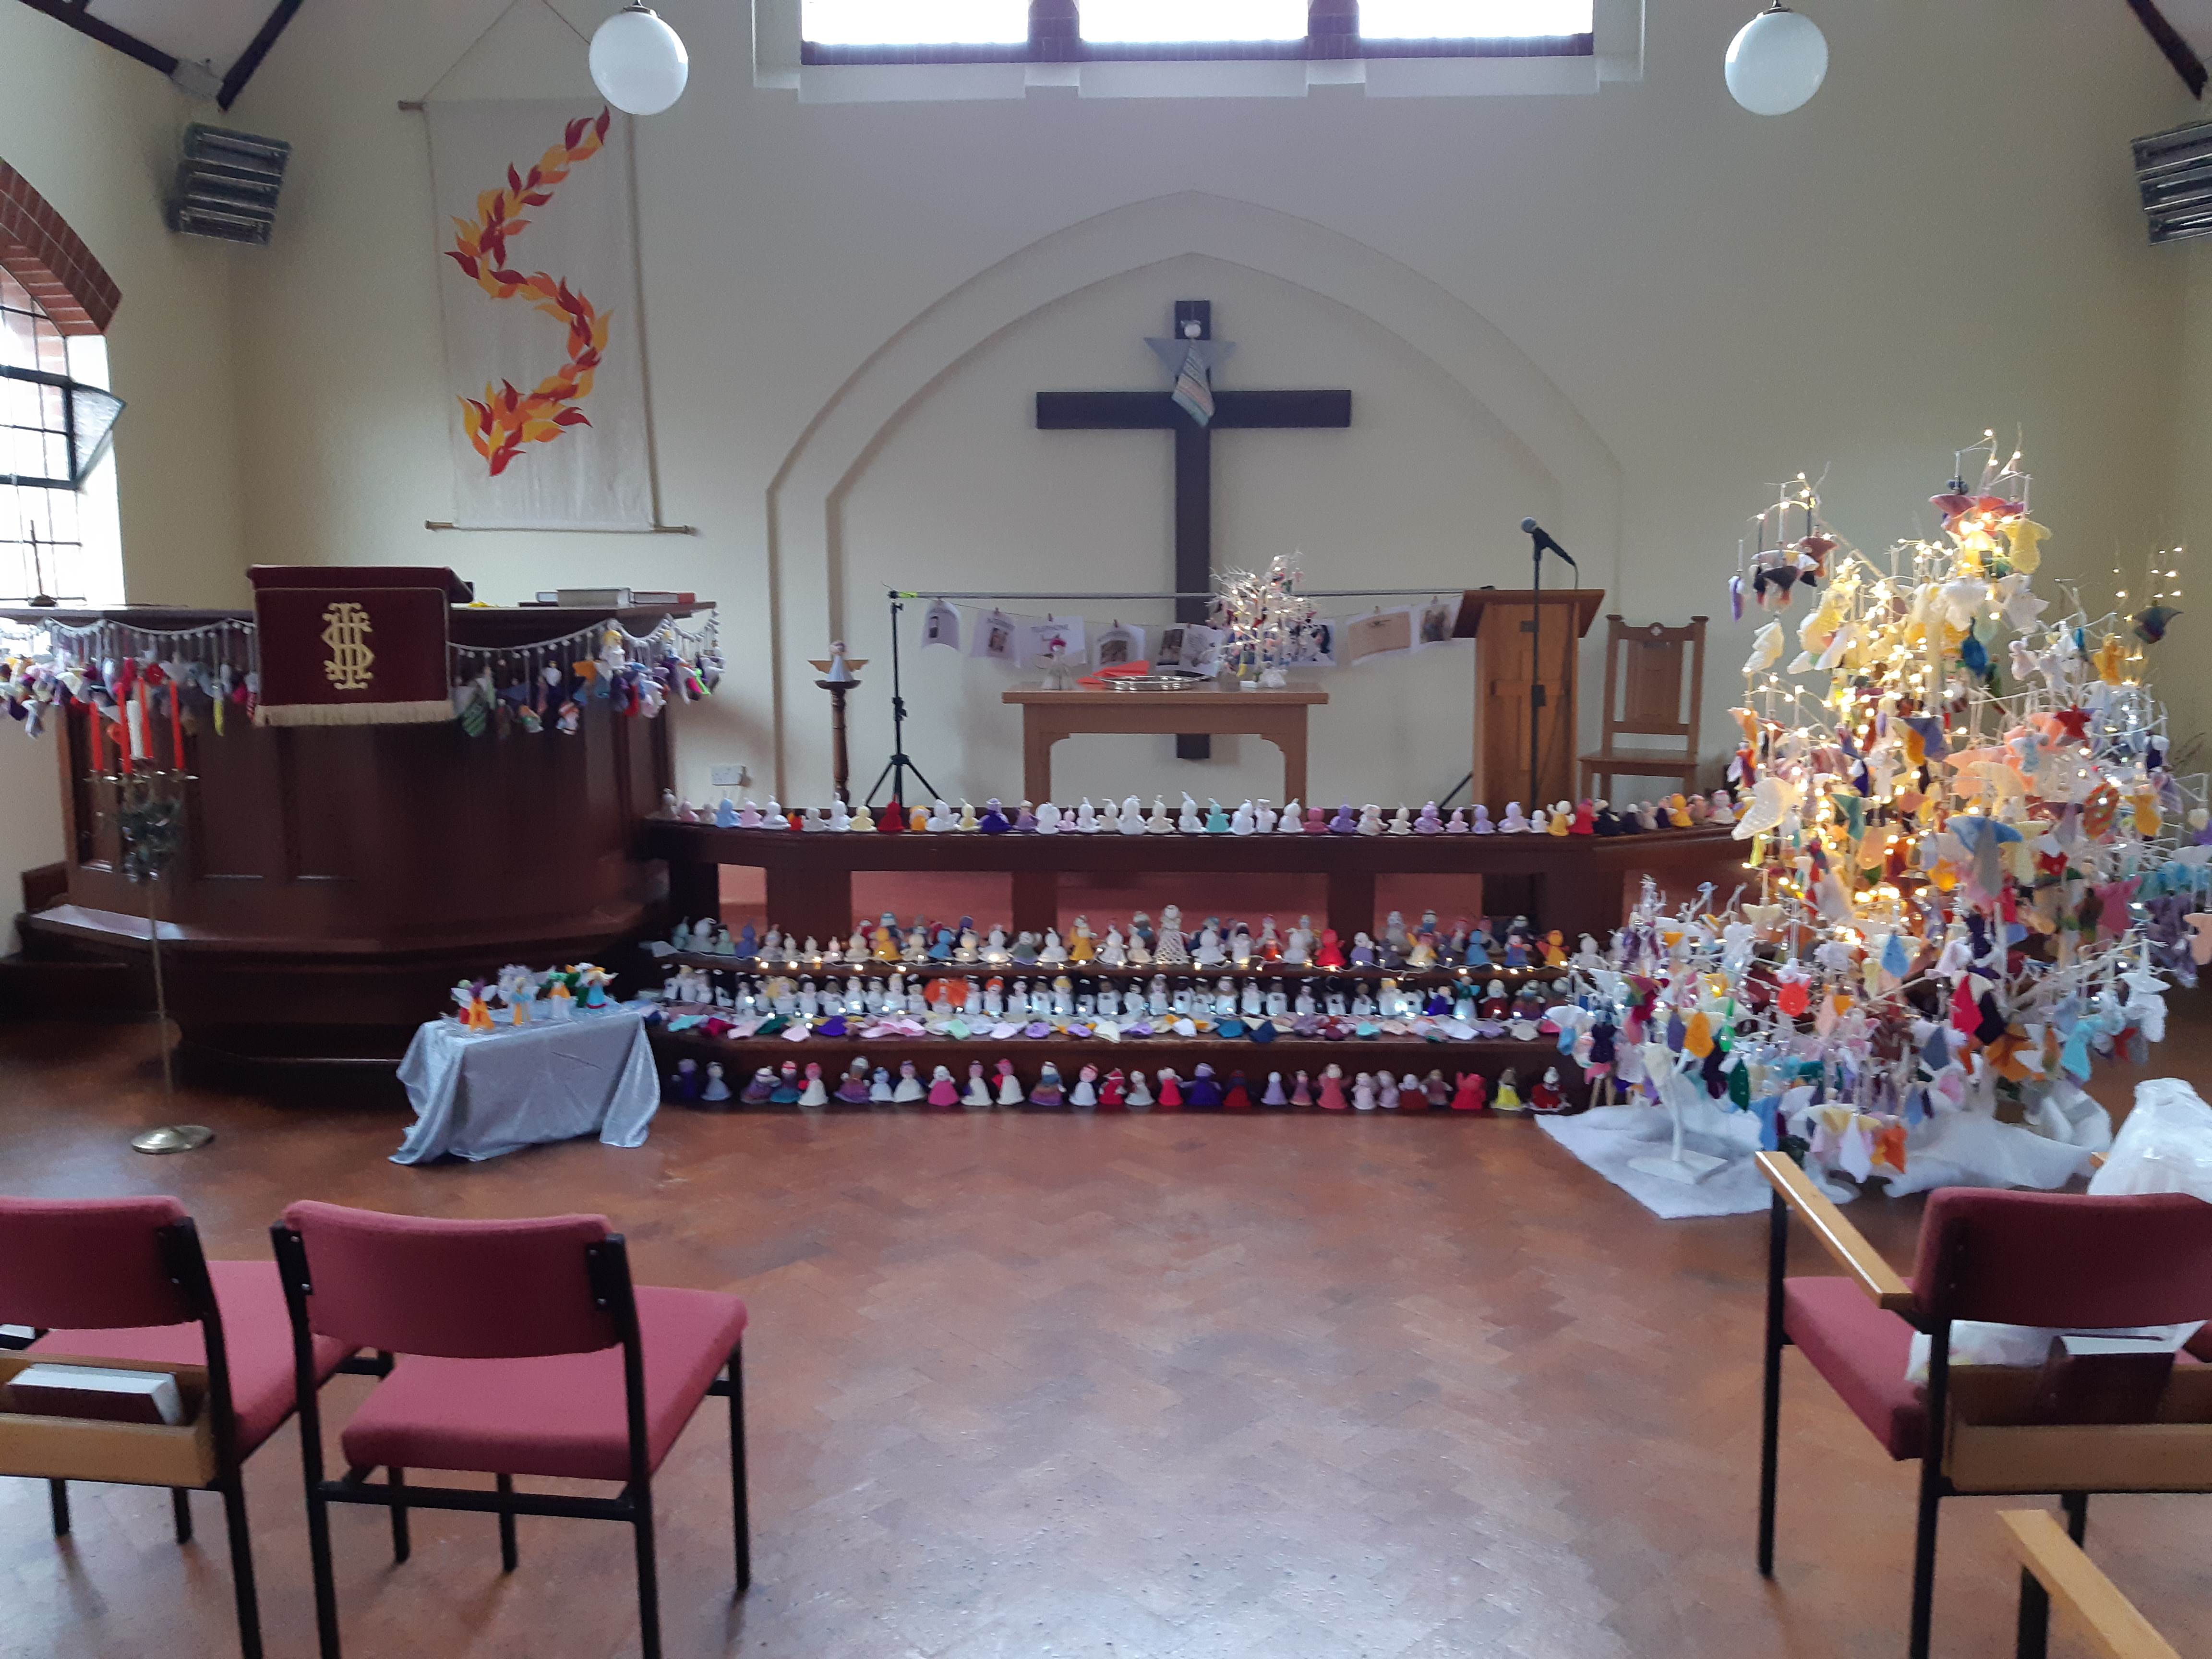 The Angels gathering Main Road Methodist Church preparing for their flight to spread the Good News to Tadley